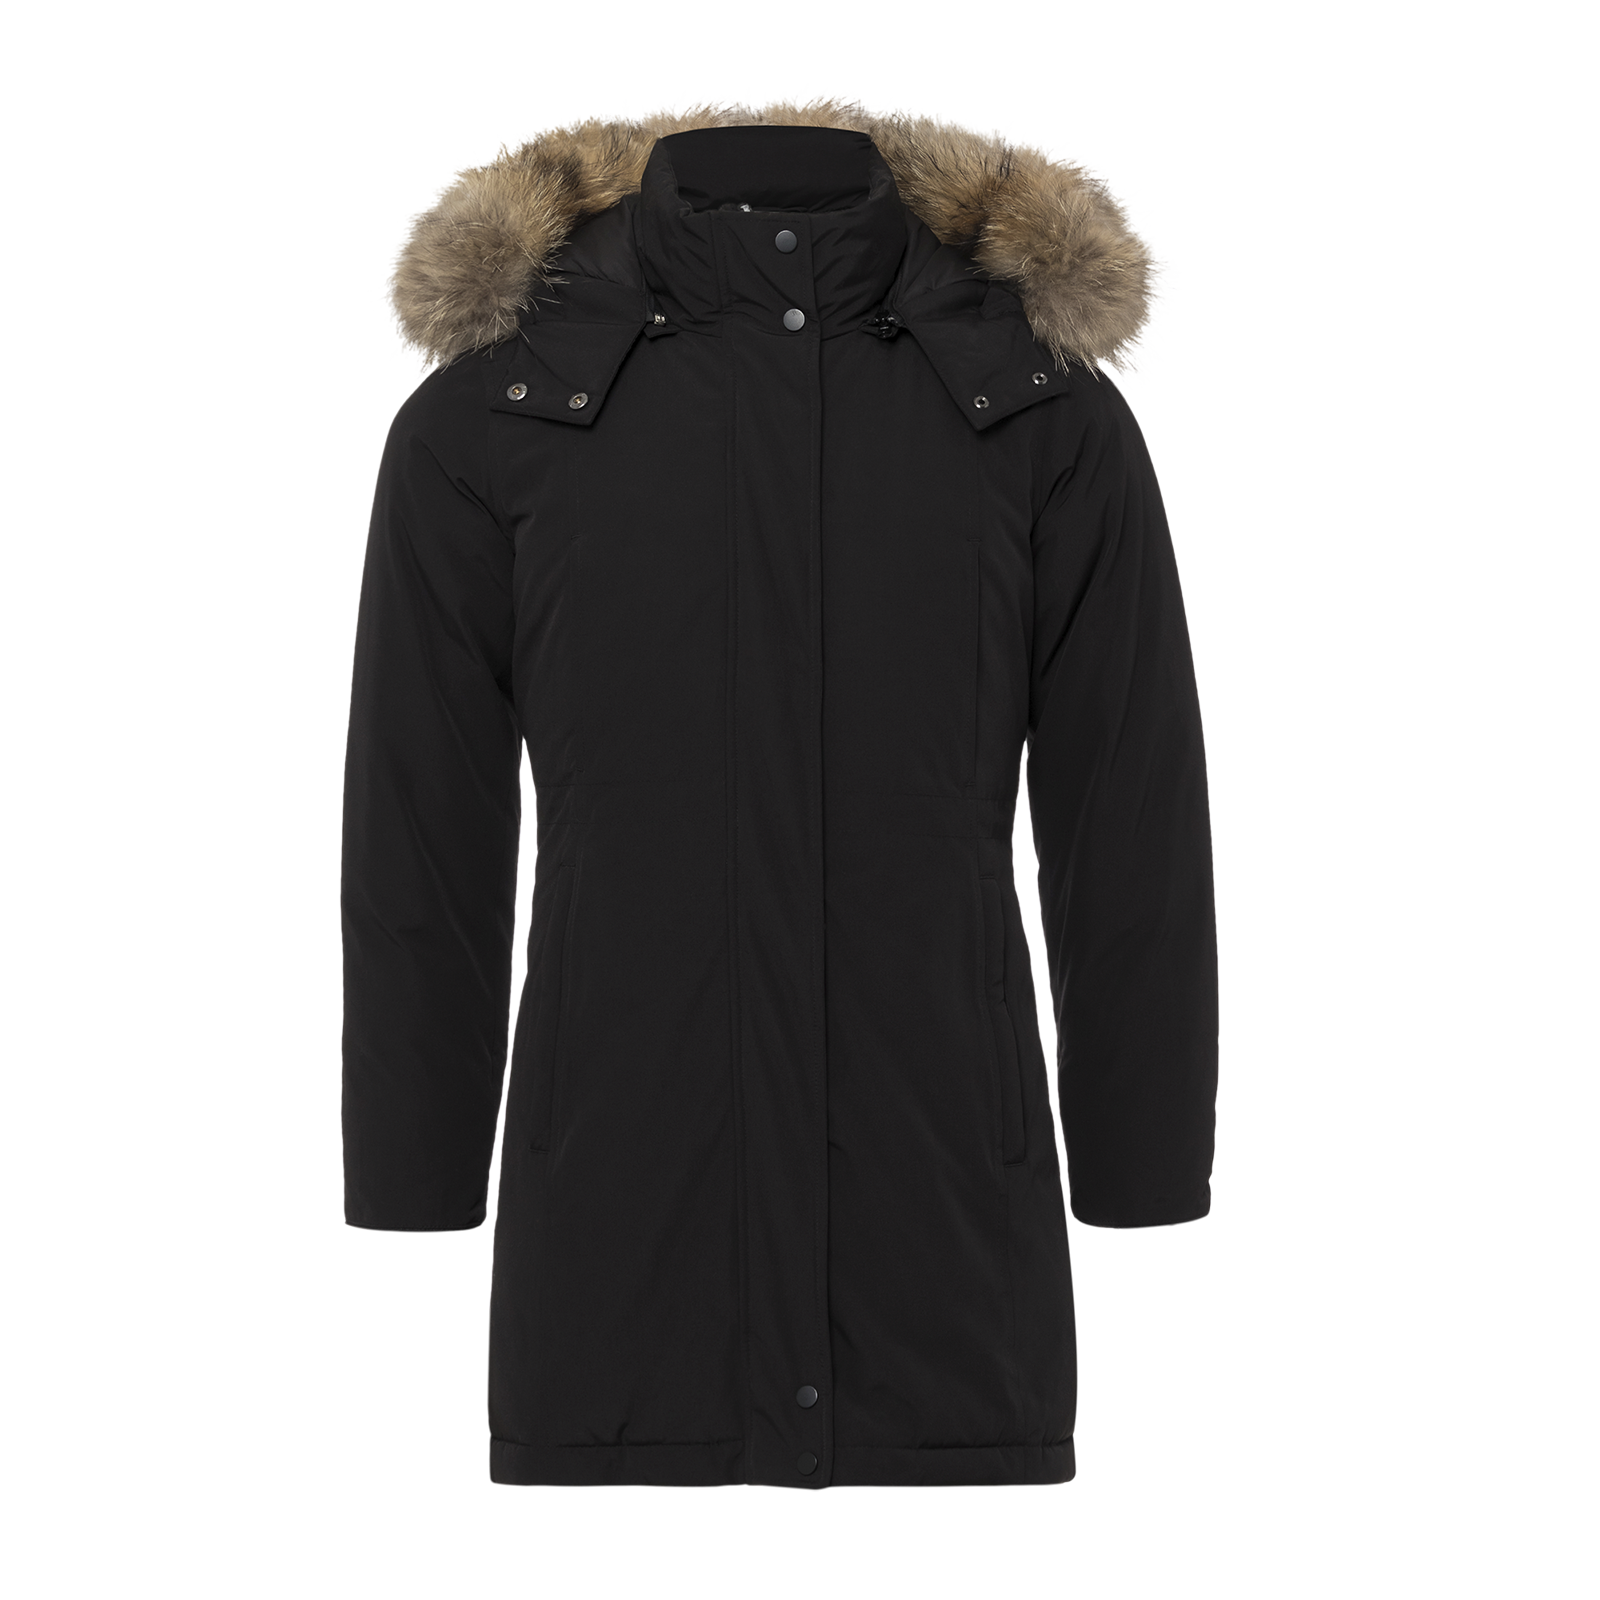 Ghost mannequin parka product image